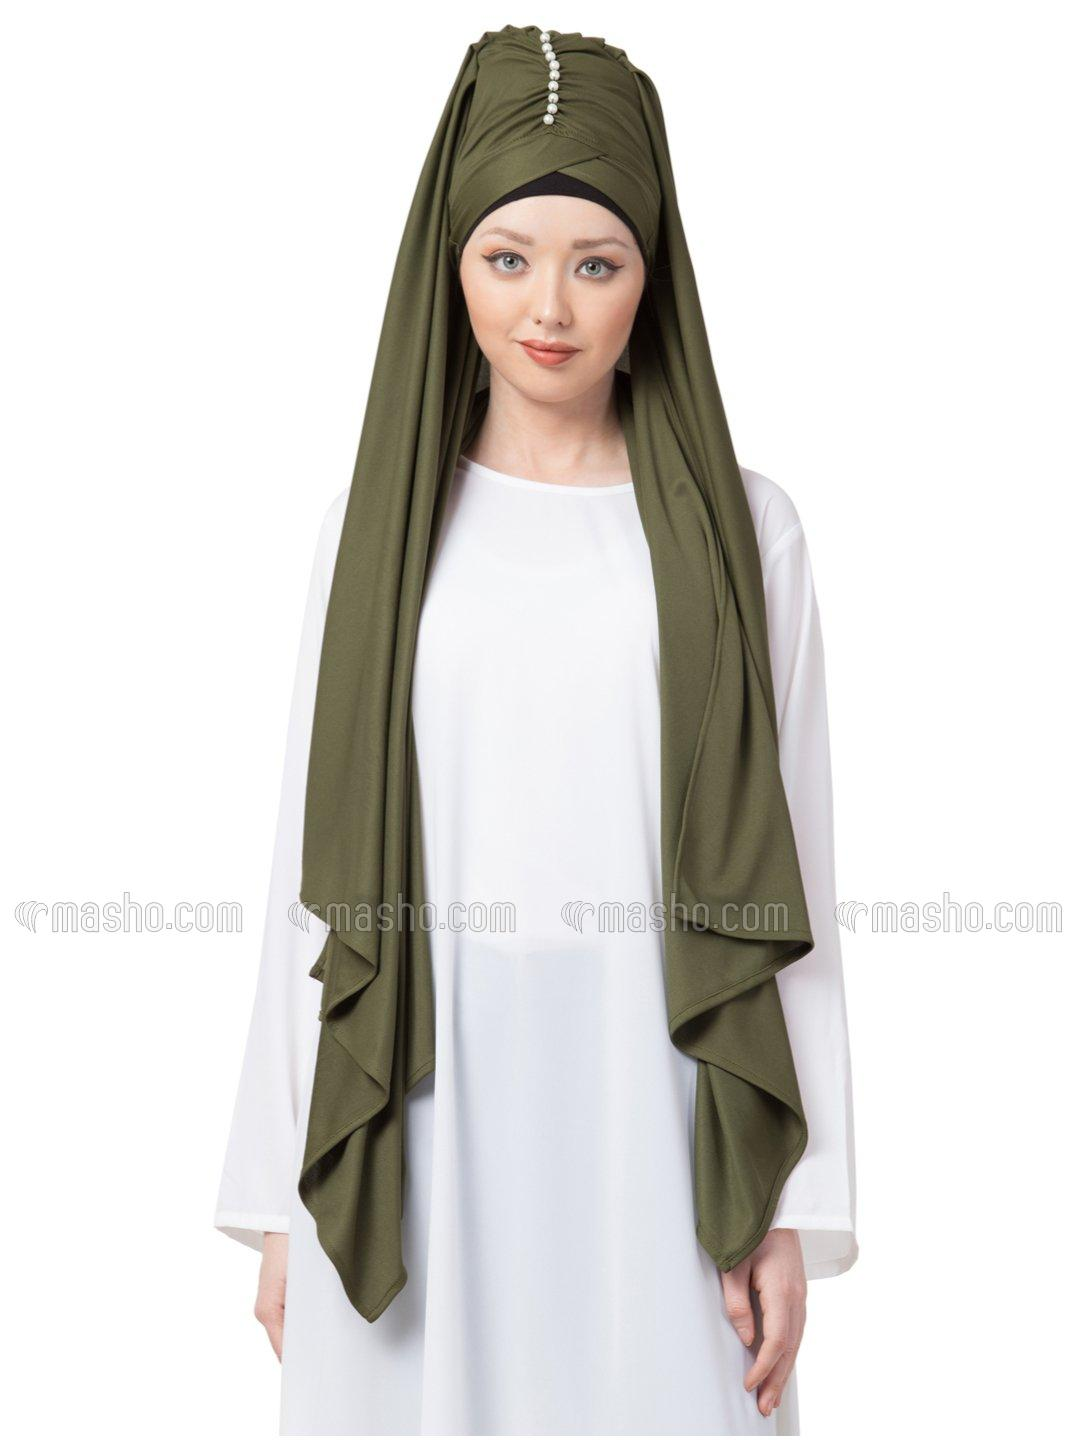 Polyster Turban With Attached Hijab In Olive